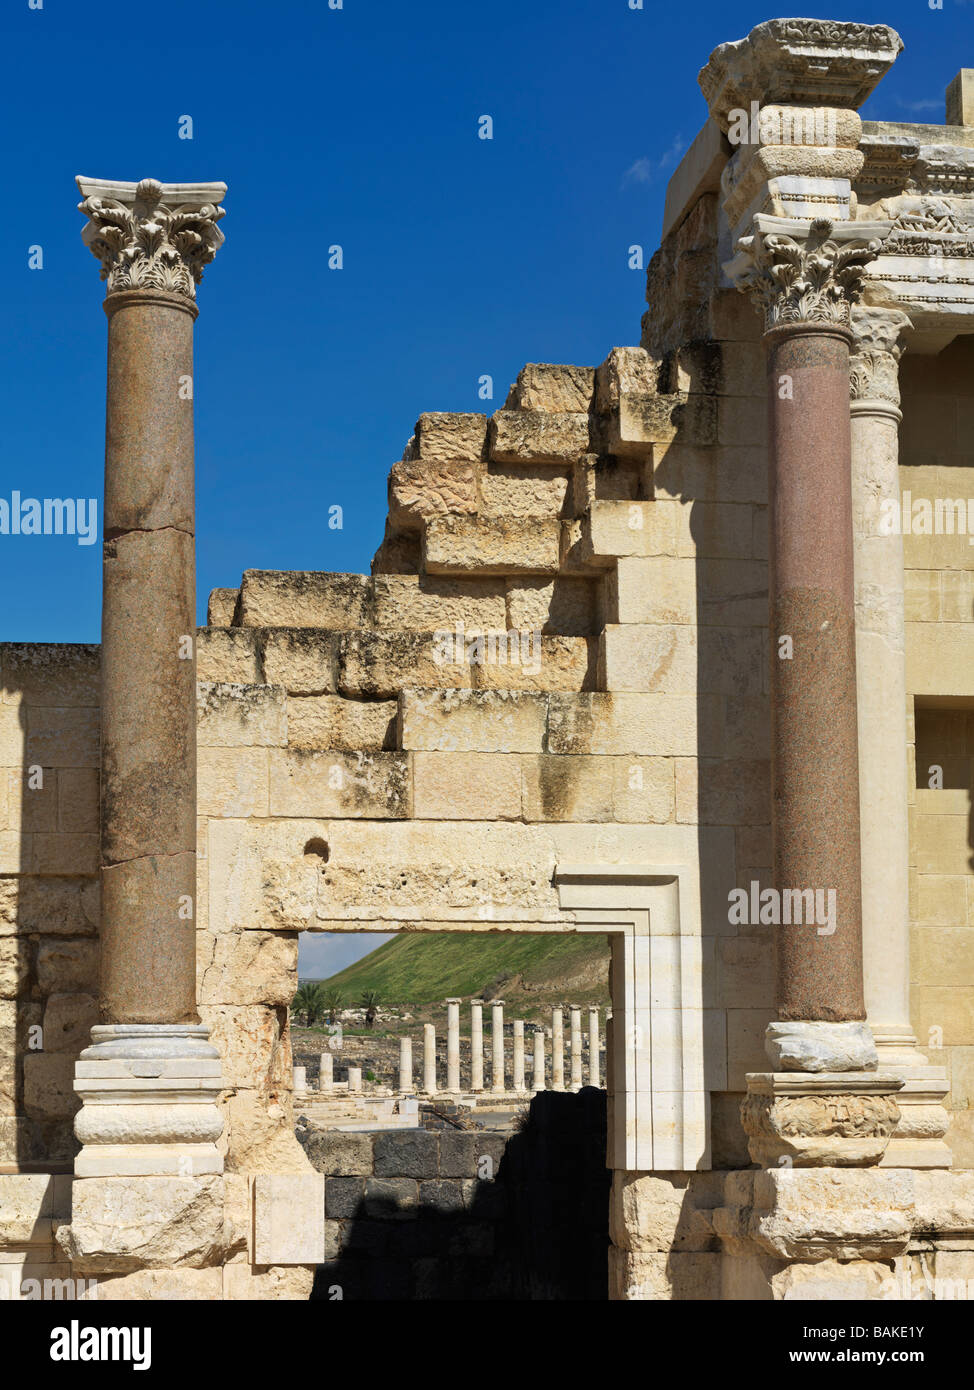 Israel Bet She'an Roman Theater ruins - Stock Image